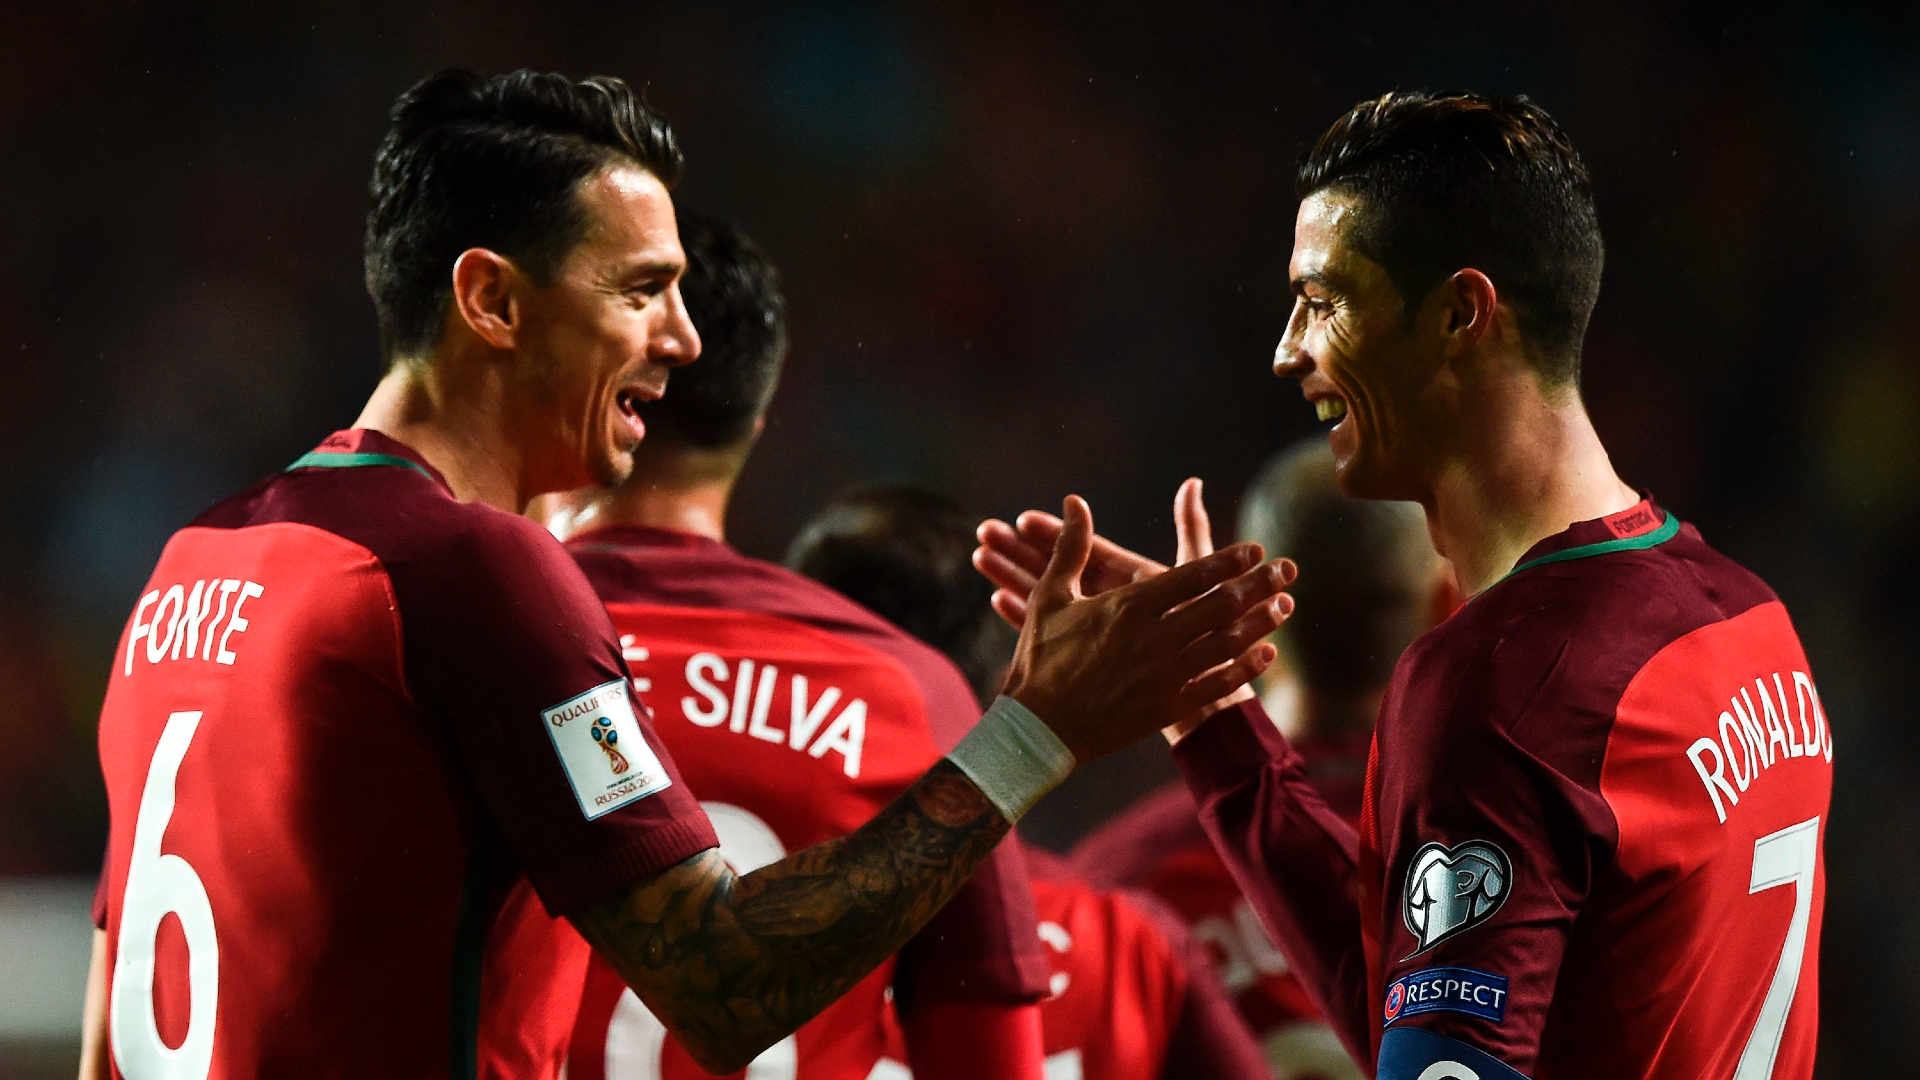 'He just answers ha ha ha' - Fonte claims he asks Ronaldo to sign for Lille 'every day' as Messi moves to PSG